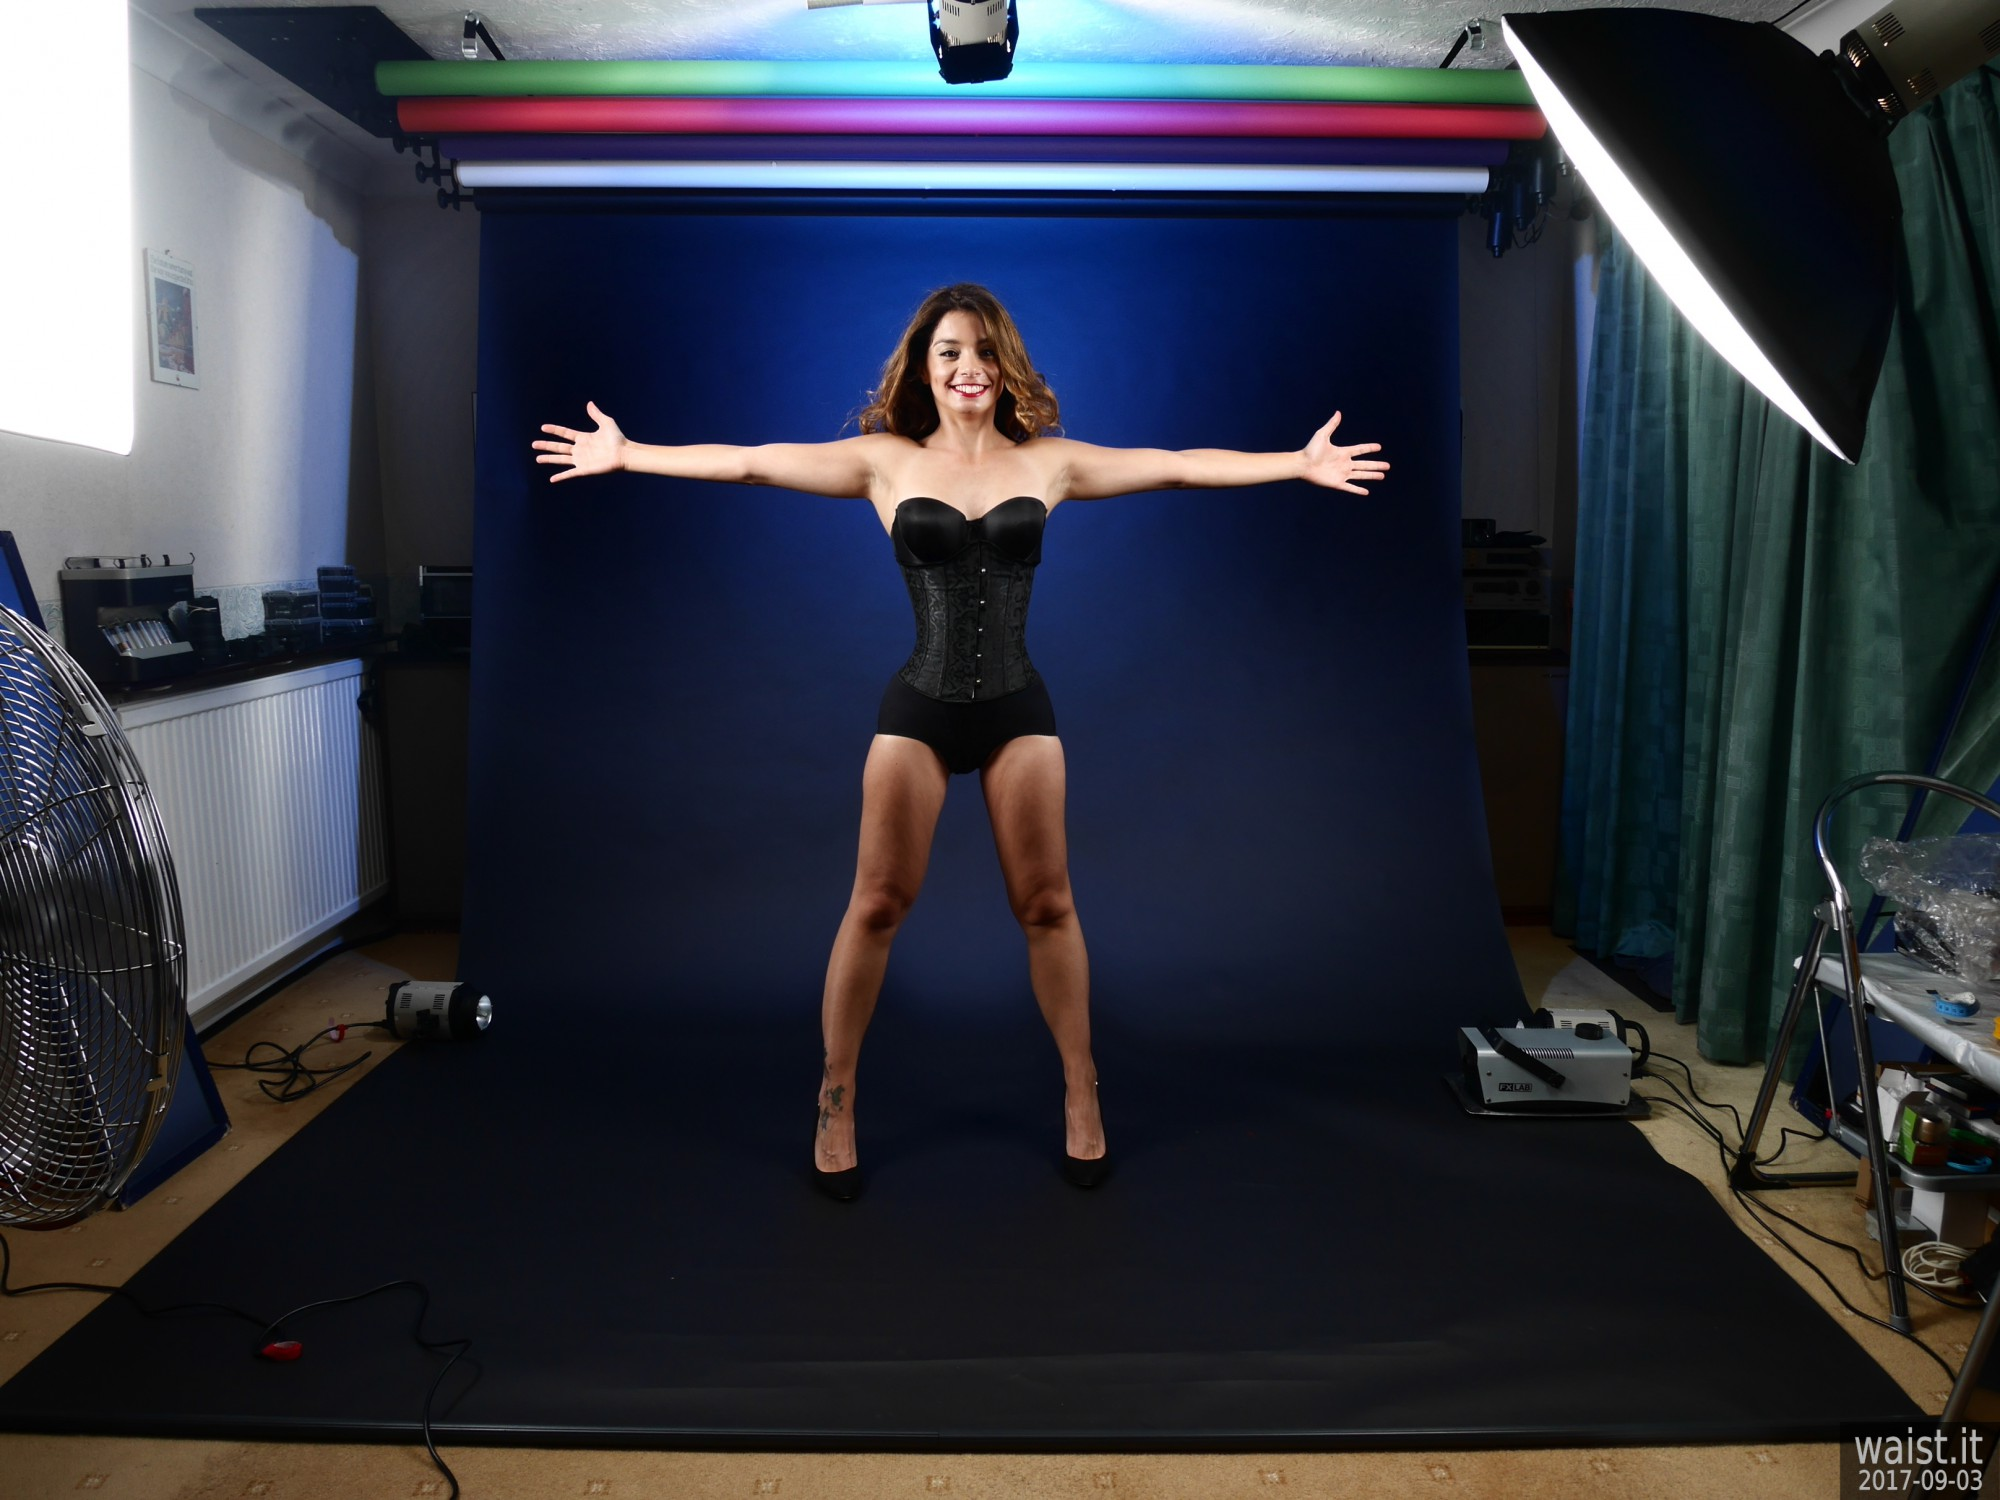 2017-09-03 Paula Soares showing off the studio in tightky-laced black underbust corset and tight black panelled pantie-girdle worn as hotpants